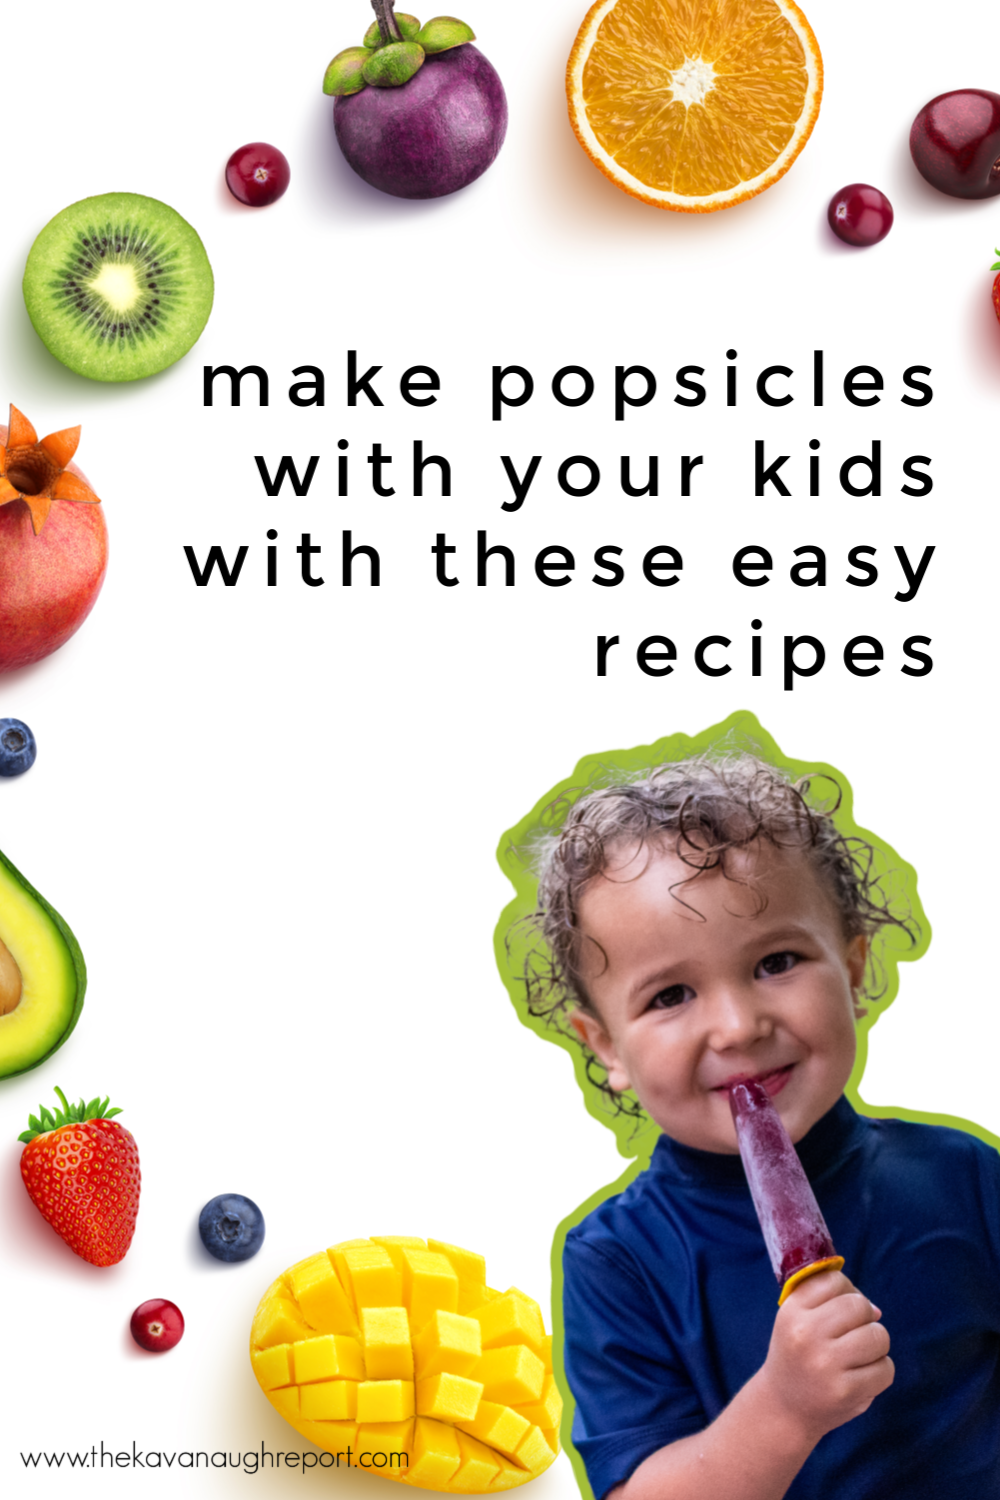 One of our favorite Montessori activities in the summer is making popsicles. Here are some easy ideas to get started with your kids.